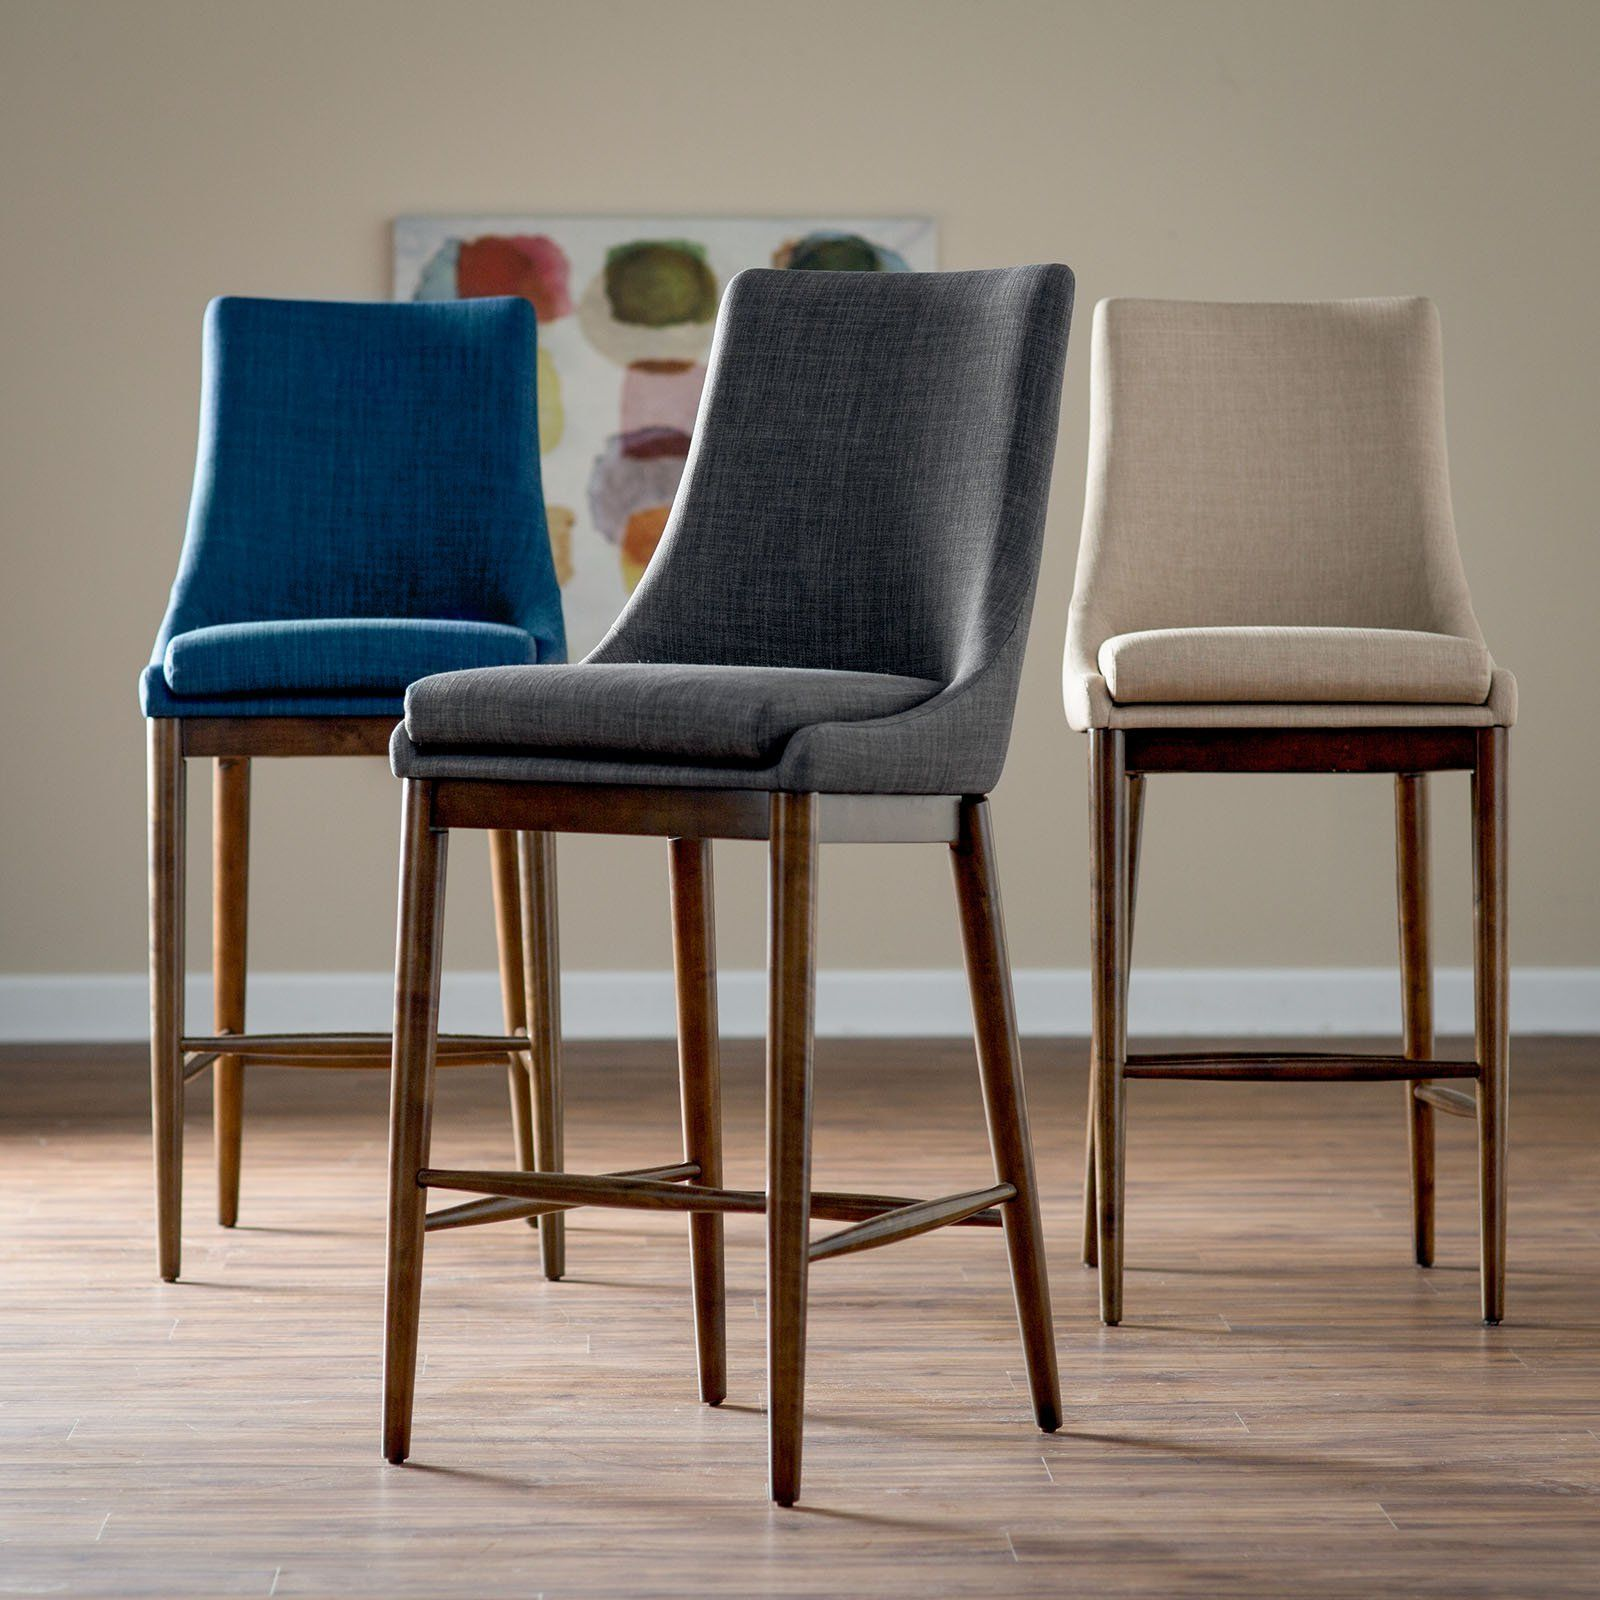 Upholstered Bar Chairs Belham Living Carter Mid Century Modern Upholstered Bar